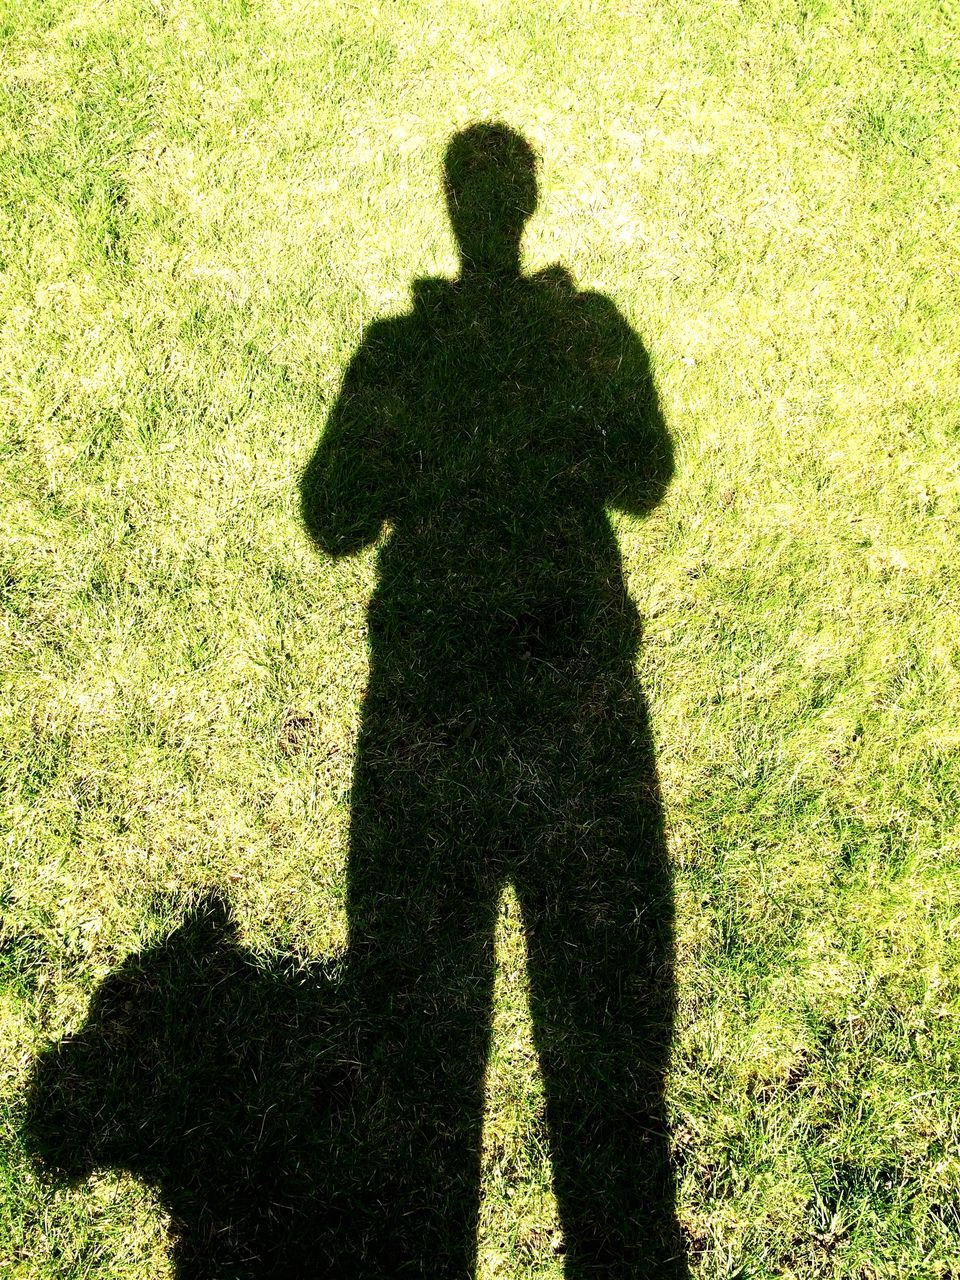 shadow, grass, sunlight, focus on shadow, standing, men, real people, one person, field, outdoors, holding, silhouette, day, green color, military, weapon, nature, tree, one man only, people